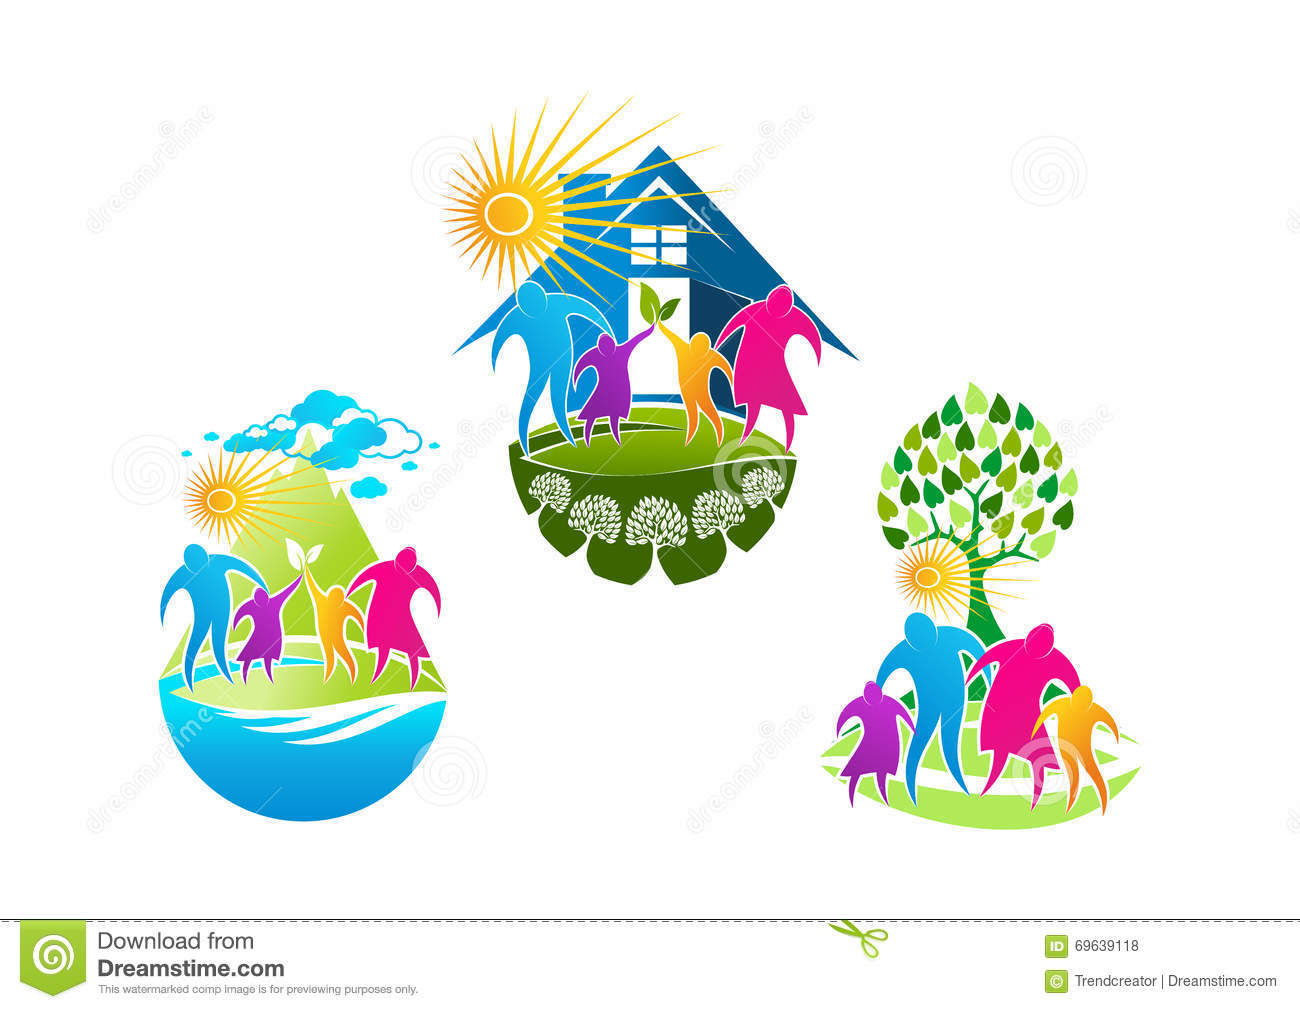 Family care logo vector illustration for Healthy home designs